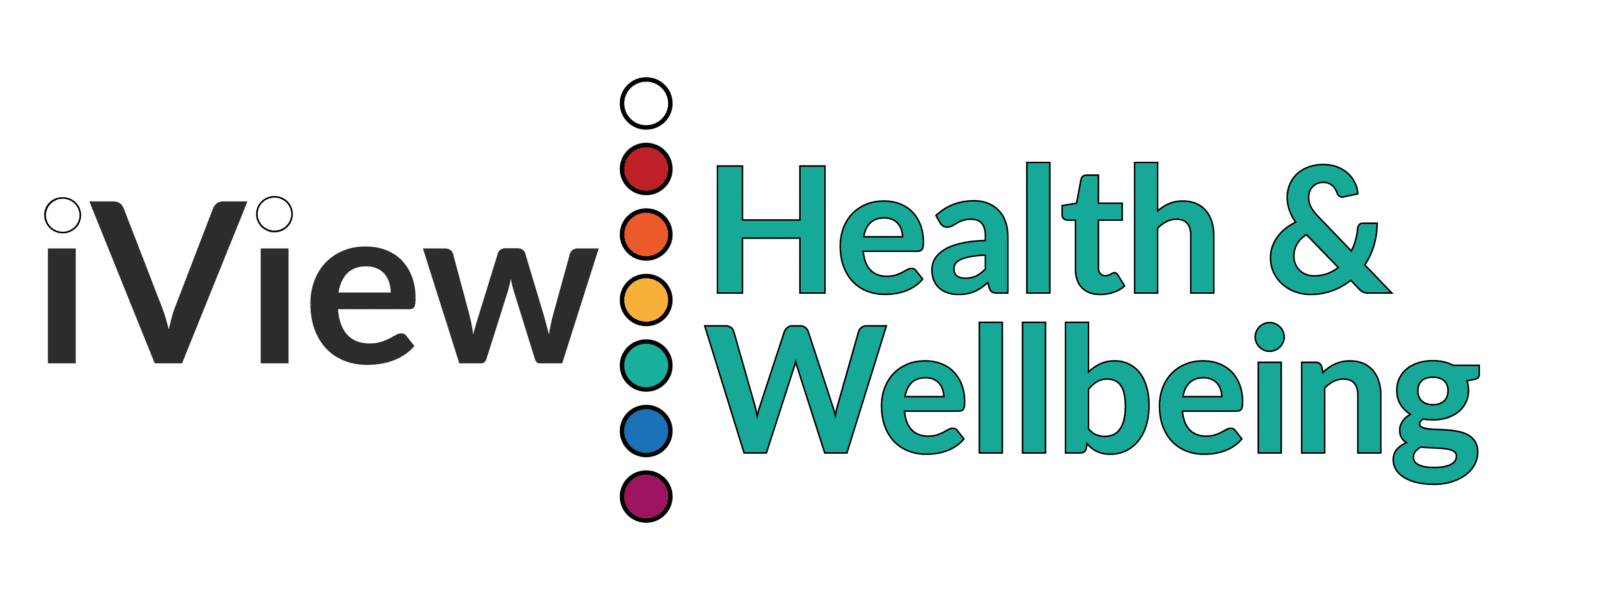 iview health and well being